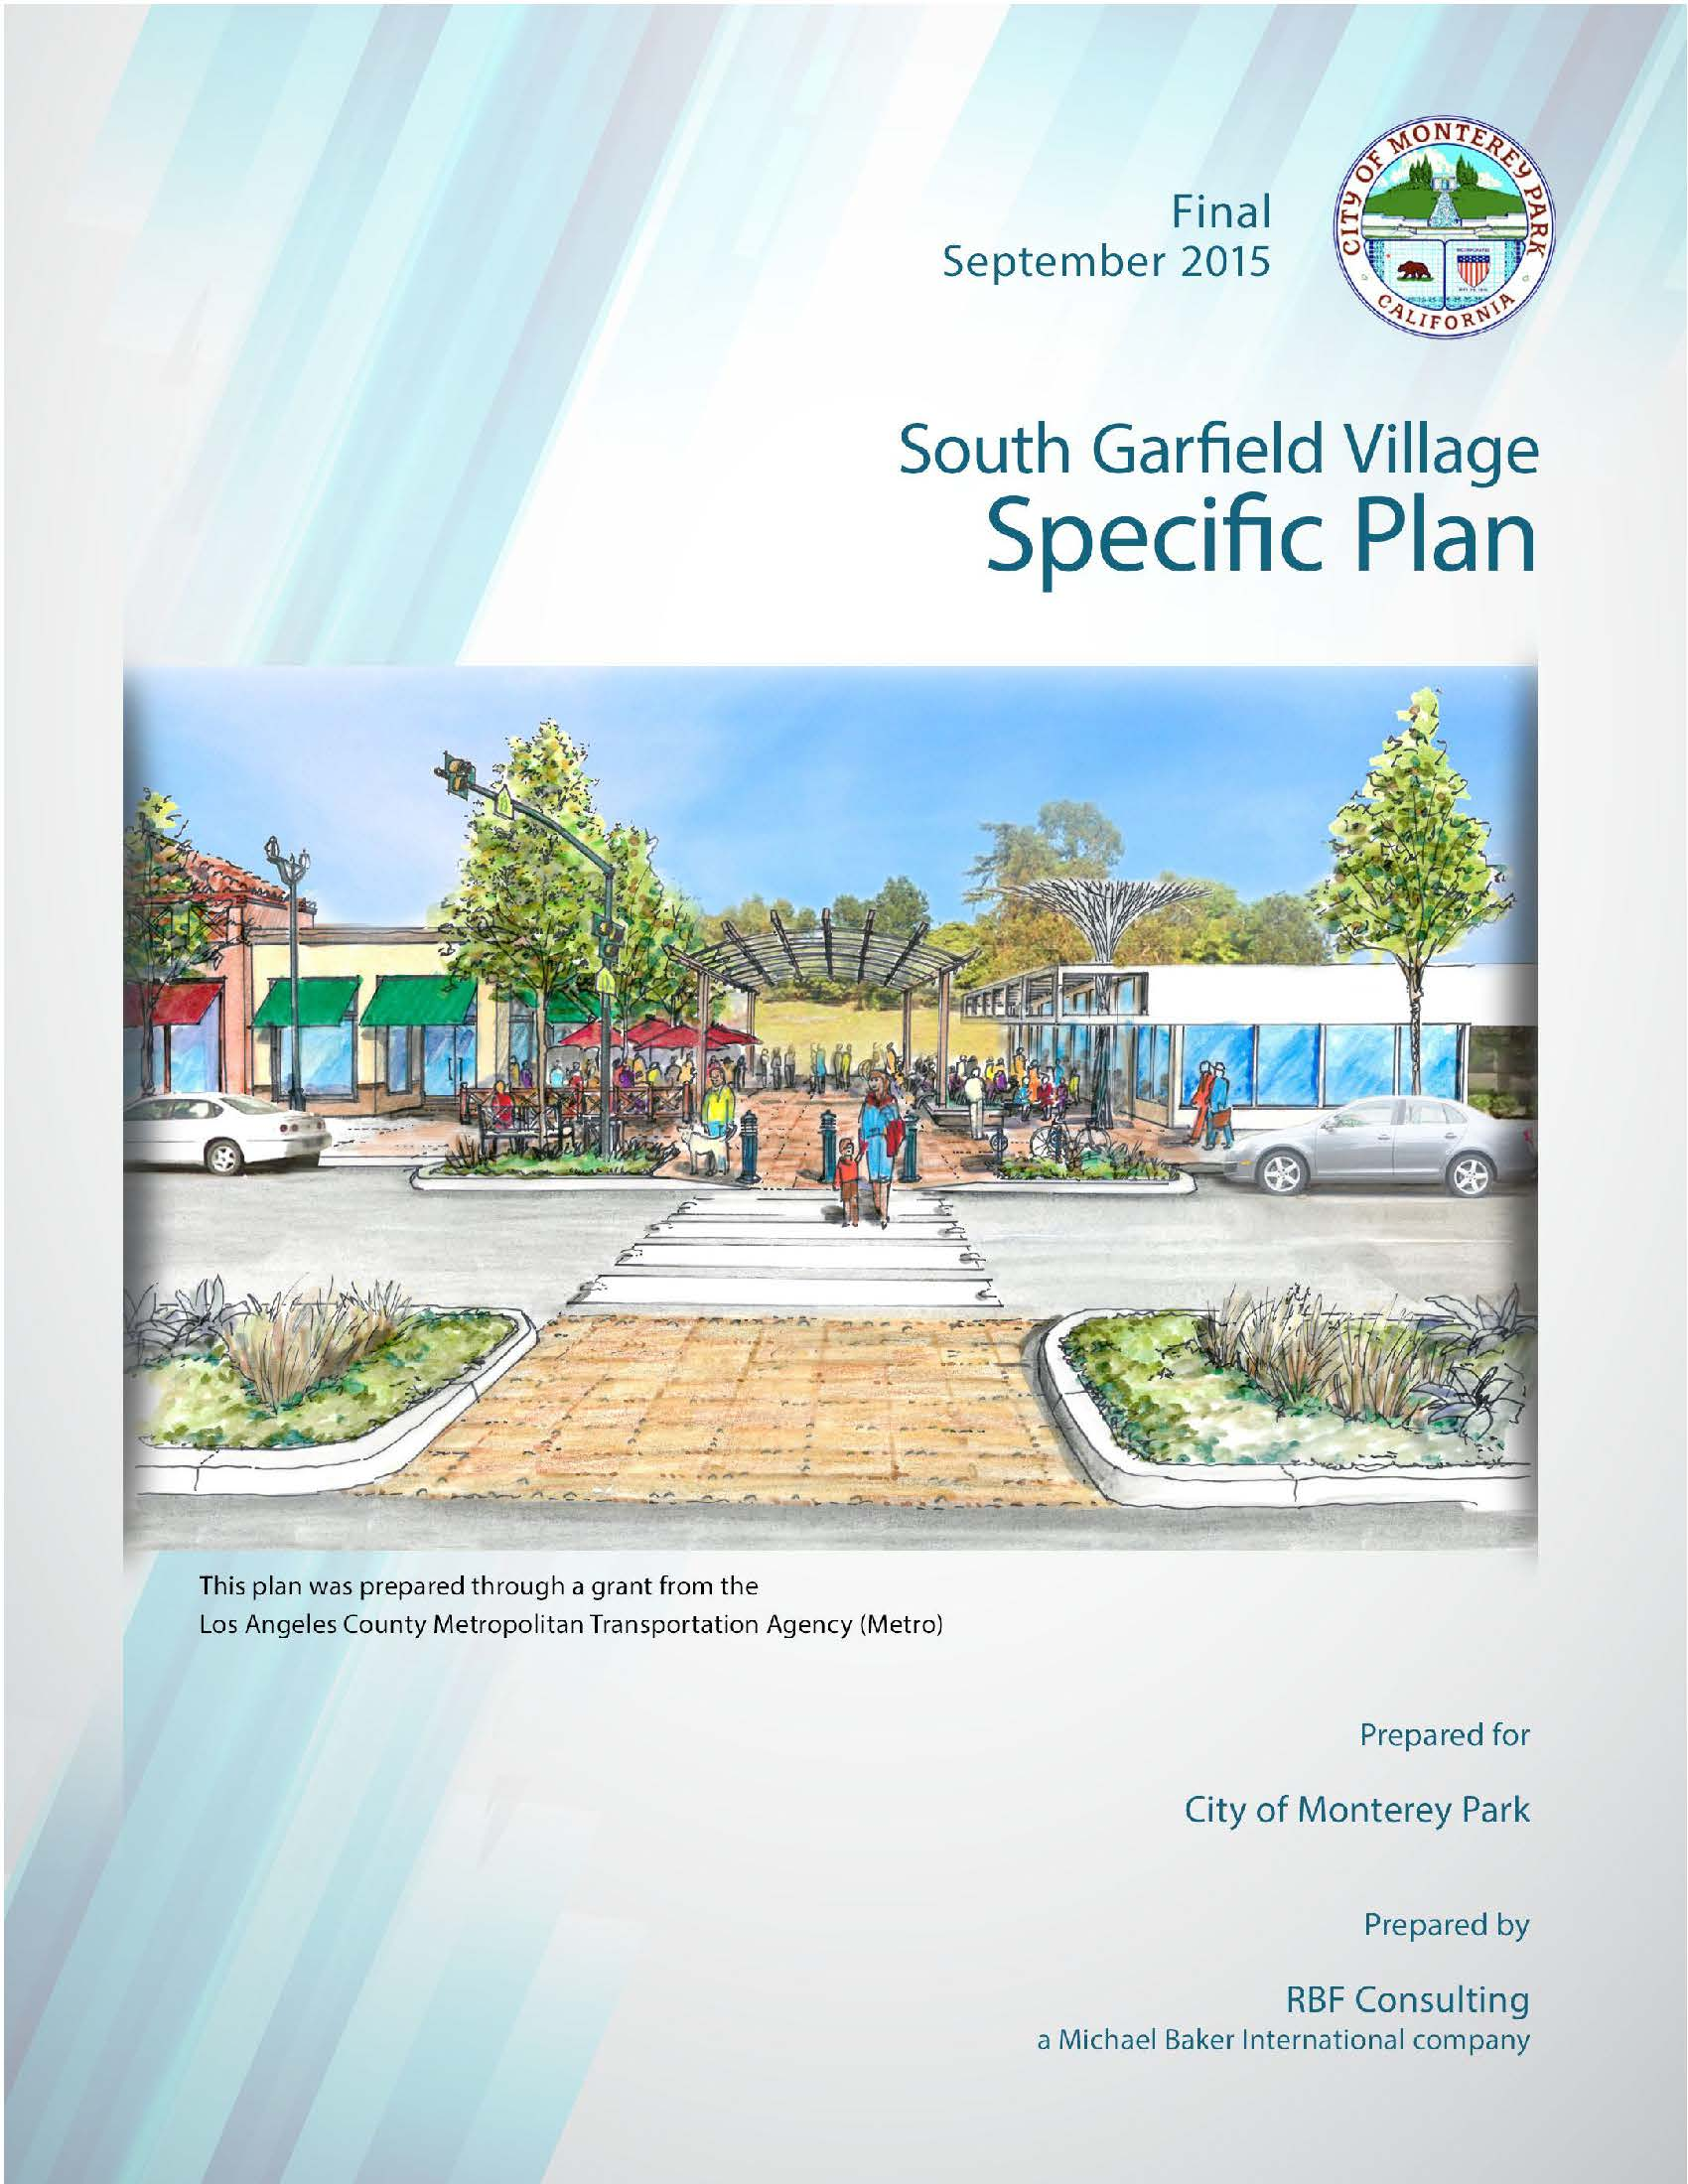 Garfield Village Plan Public Review Draft 9-22-15 (FINAL)_Page_001